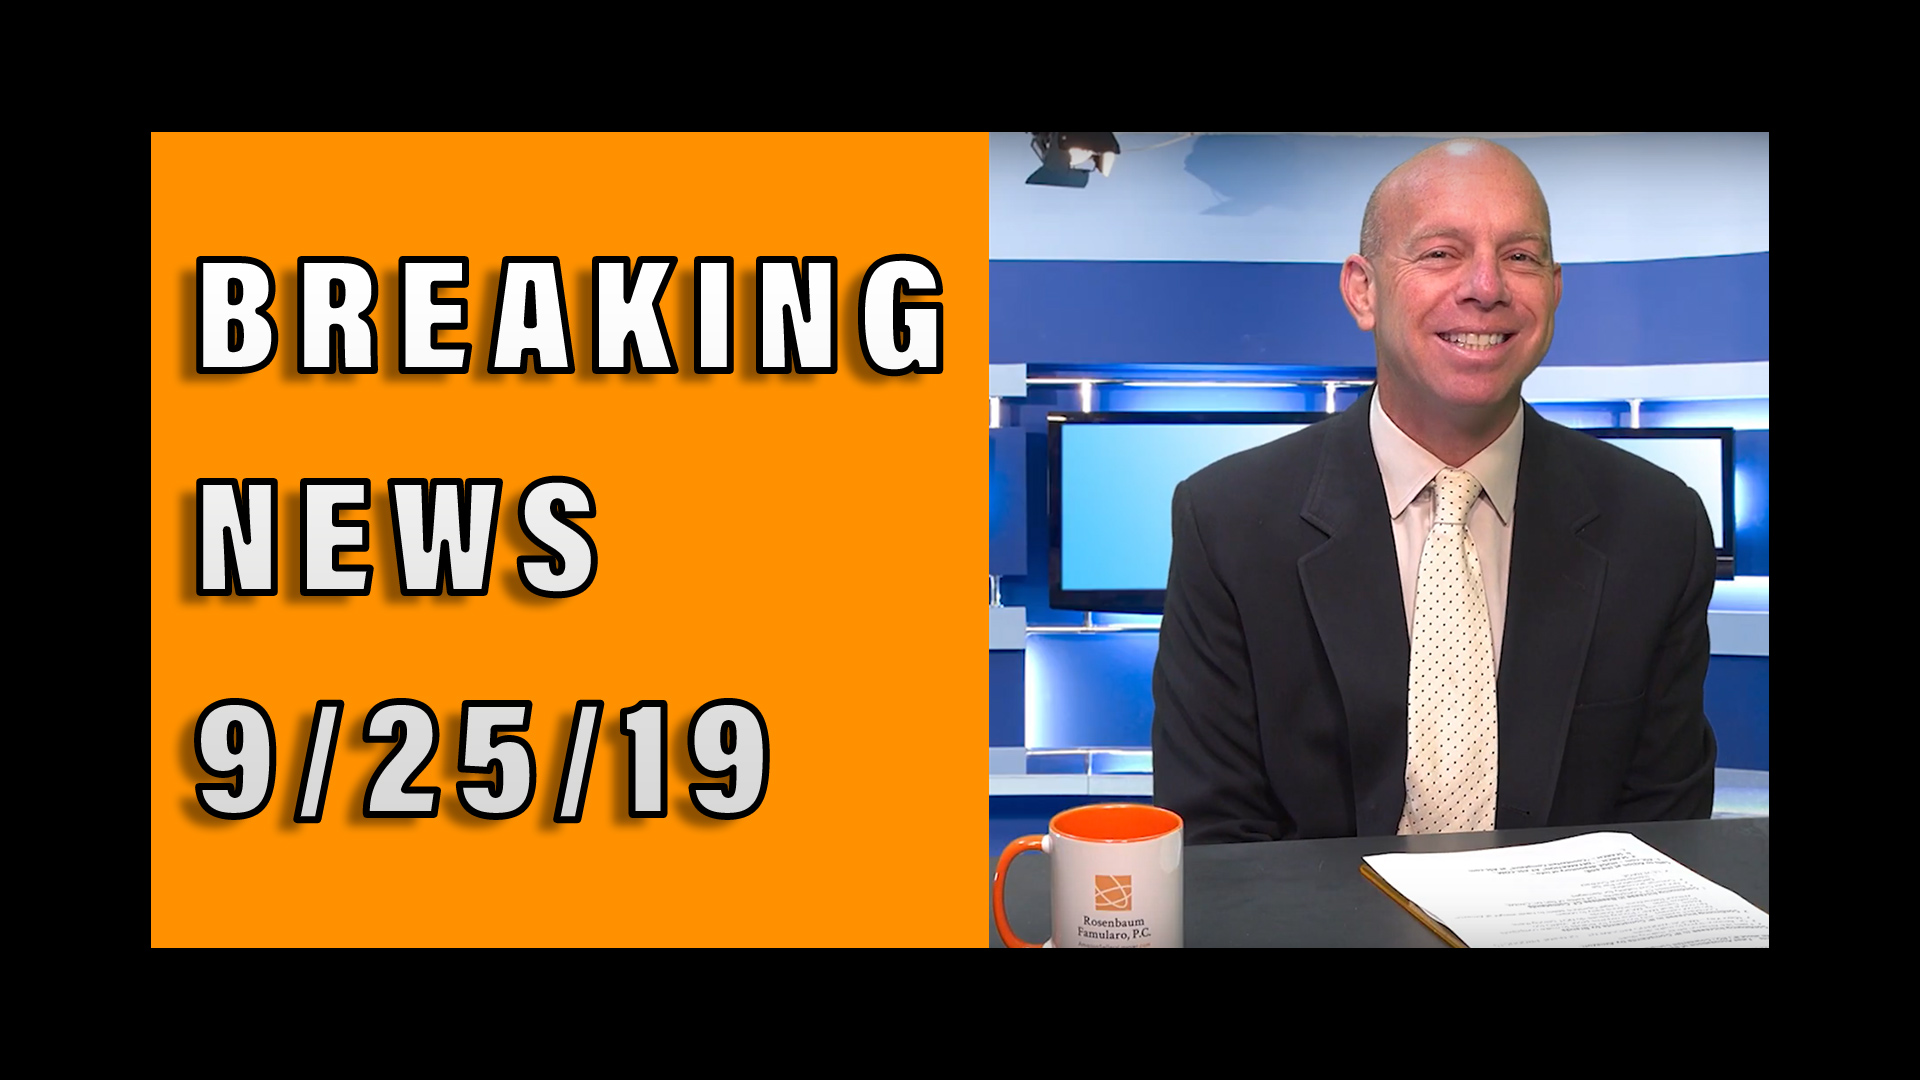 Amazon Sellers' Breaking News 9/25/19